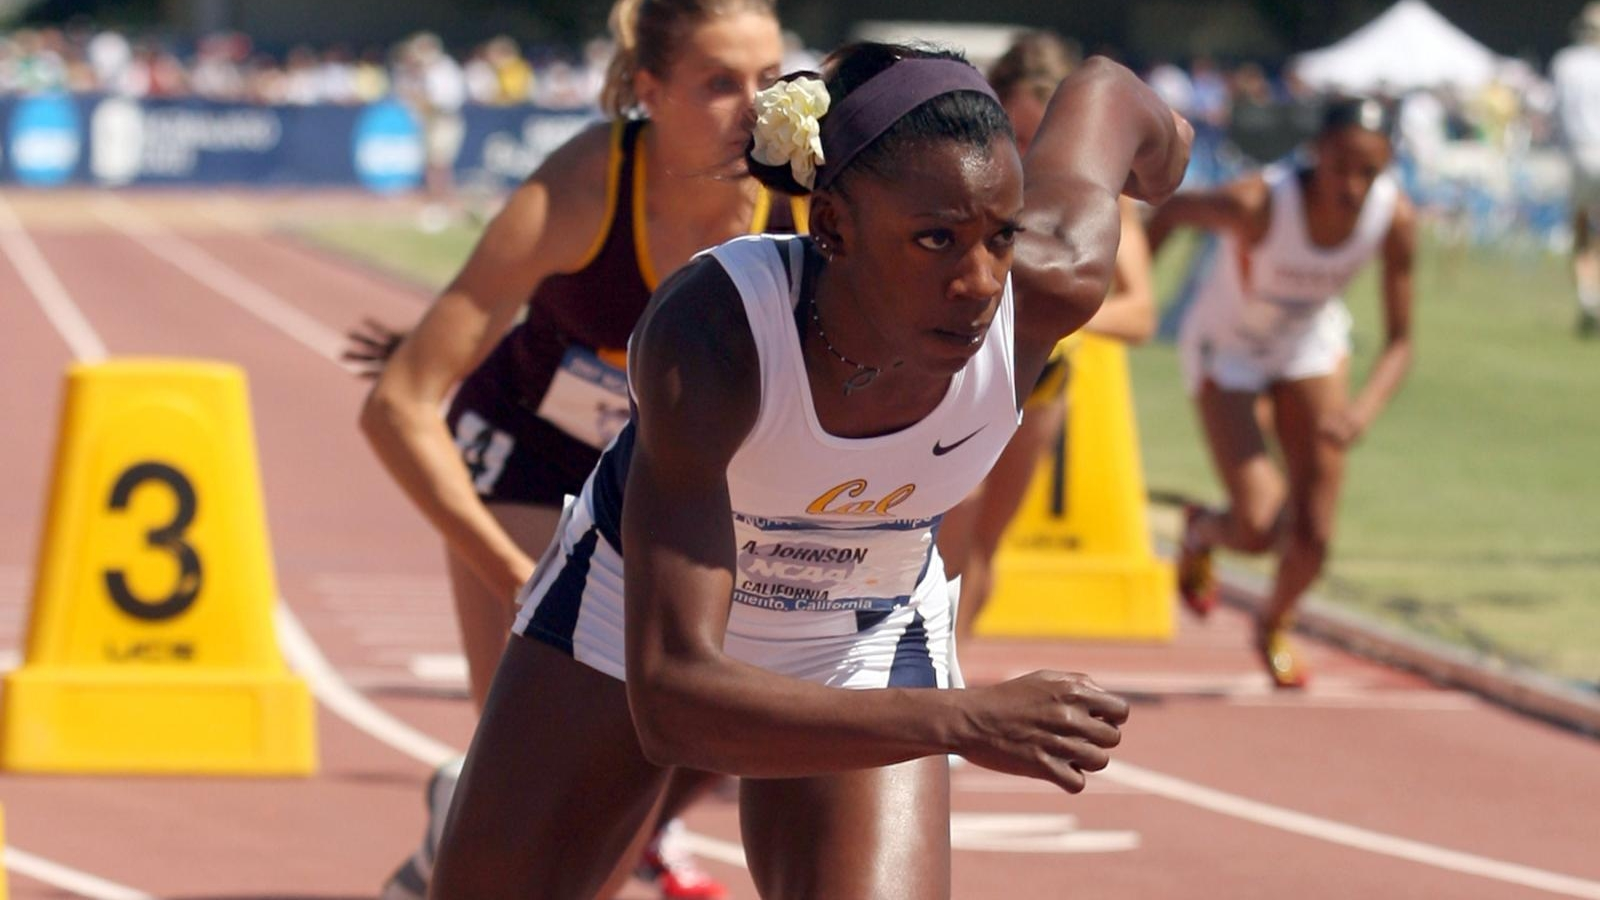 Track & Field - Track and field began competition for the University of California in 1872. Since then, the men's team has produced 1 team and 26 individual and 3 relay national championships. The women's team has won 3 indoor individual national championships, and 7 outdoor individual national championships.